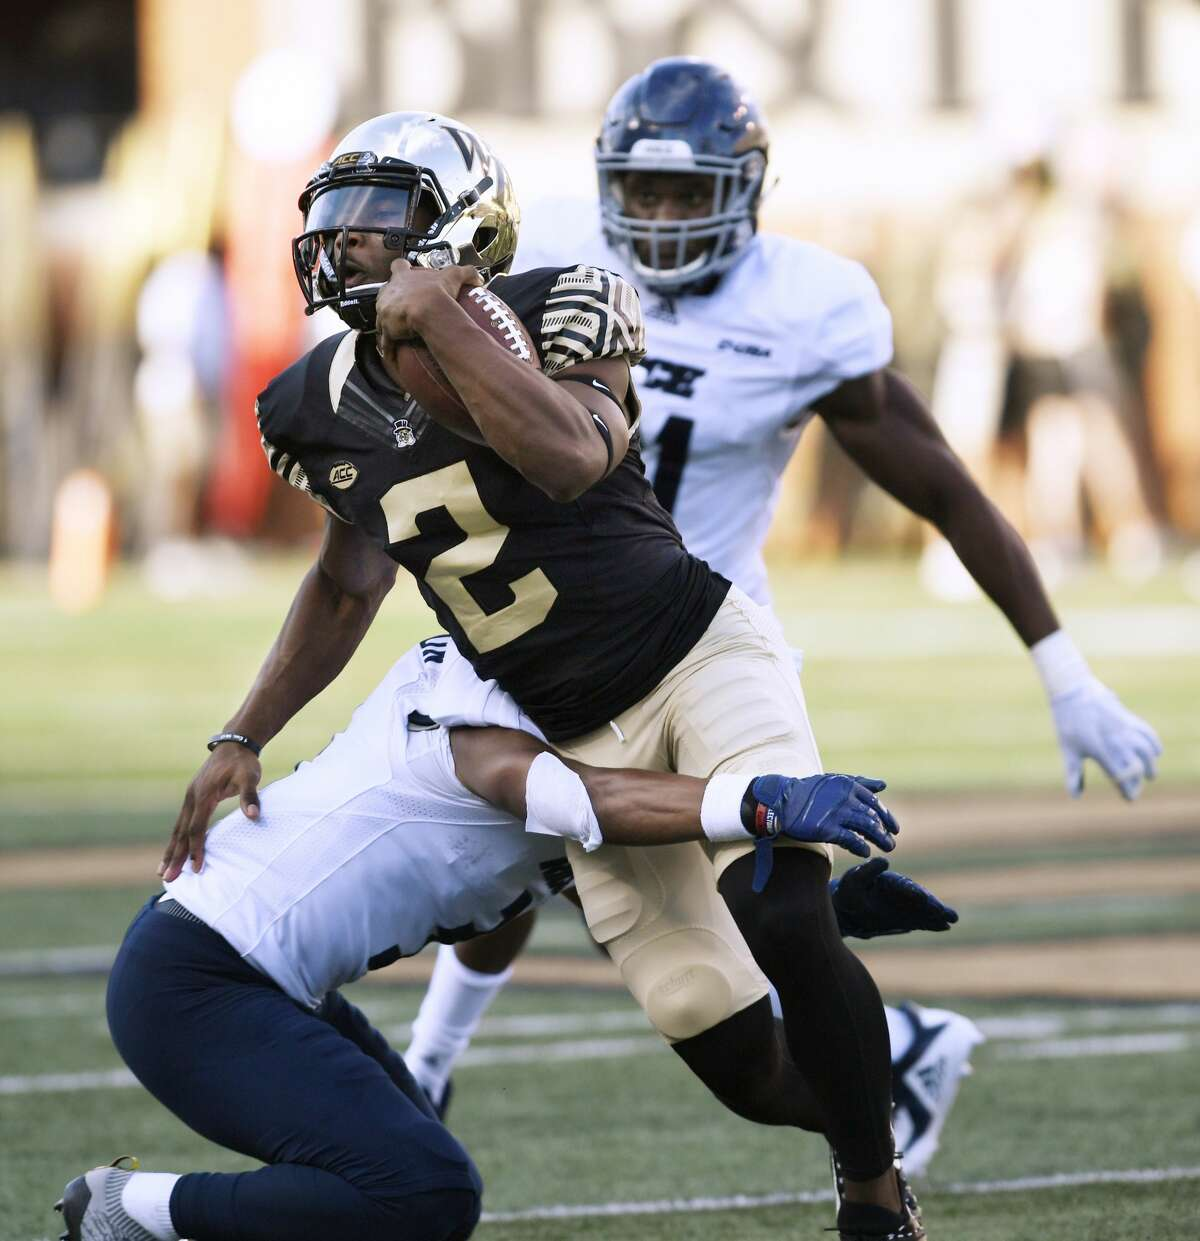 Wake Forest's wide receiver Kendall Hinton (2) is tackled by Rice's Brandon Douglas-Dotson (3) during the second half of their NCAA college football game, Saturday, Sept. 29, 2018, in Winston-Salem, N.C. (AP Photo/Woody Marshall)